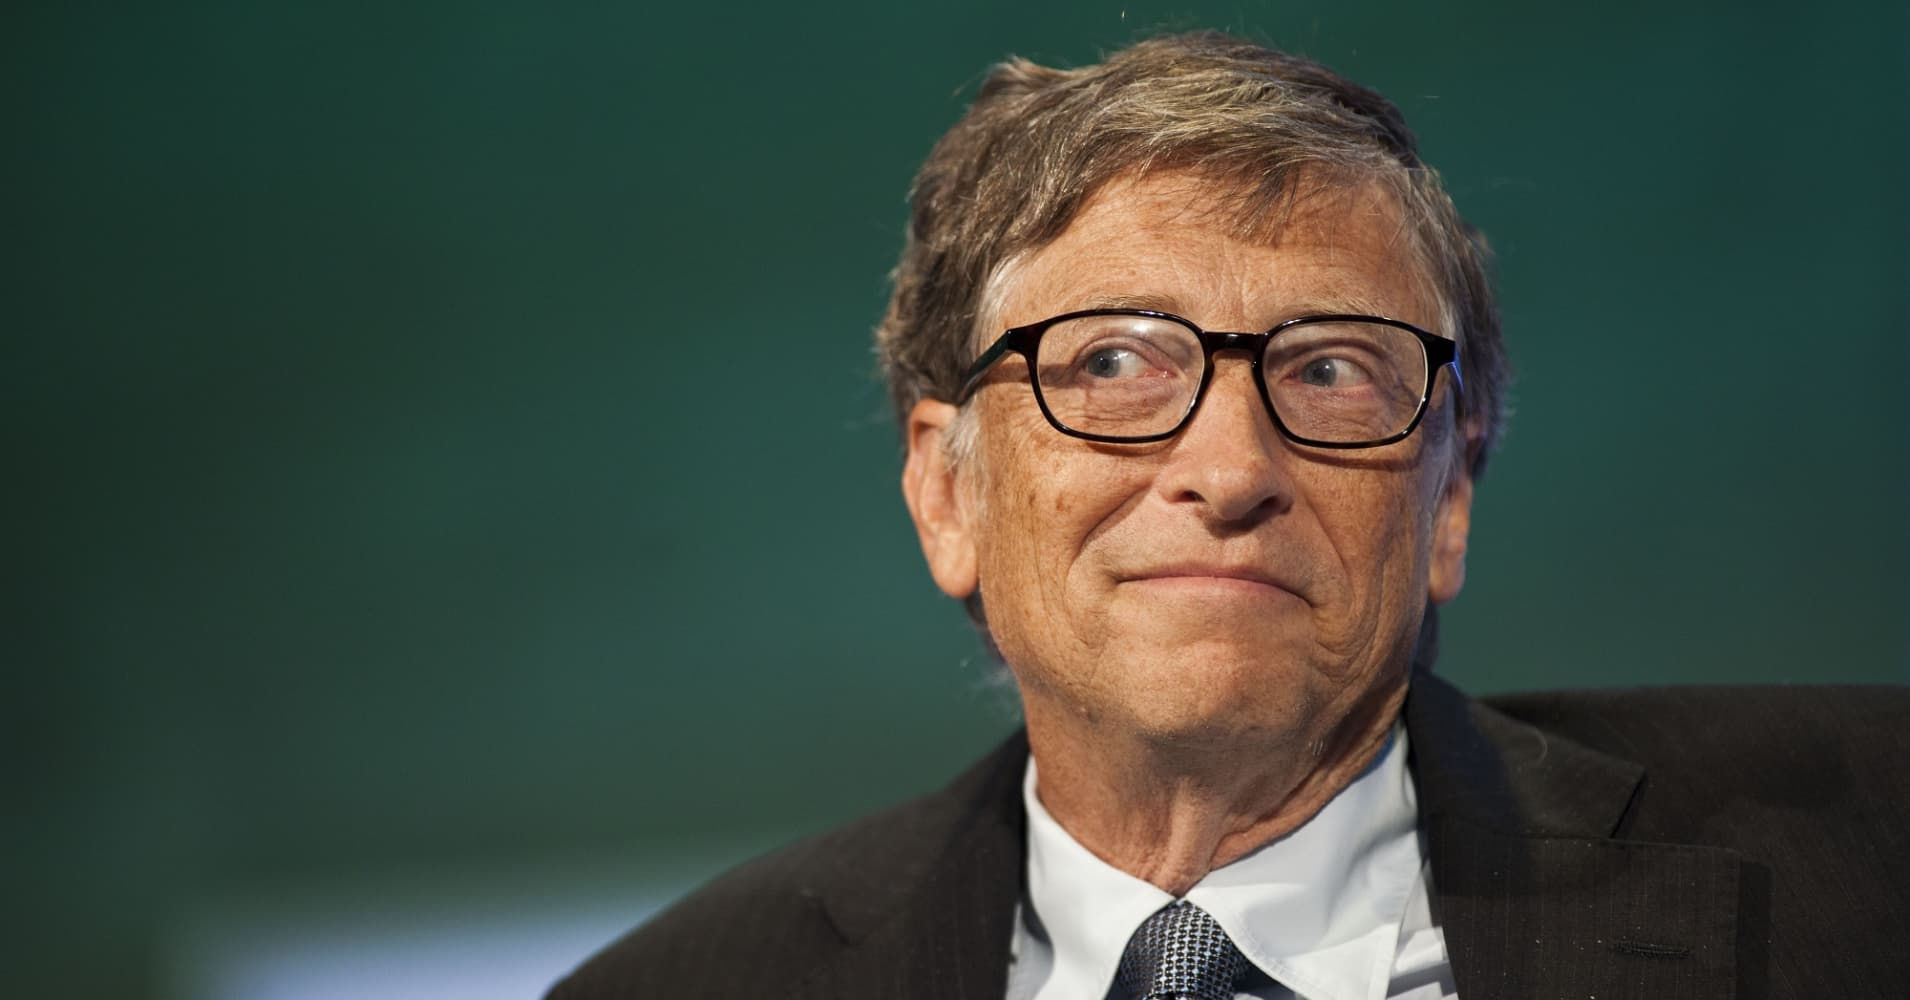 Bill Gates says these fields have the most potential